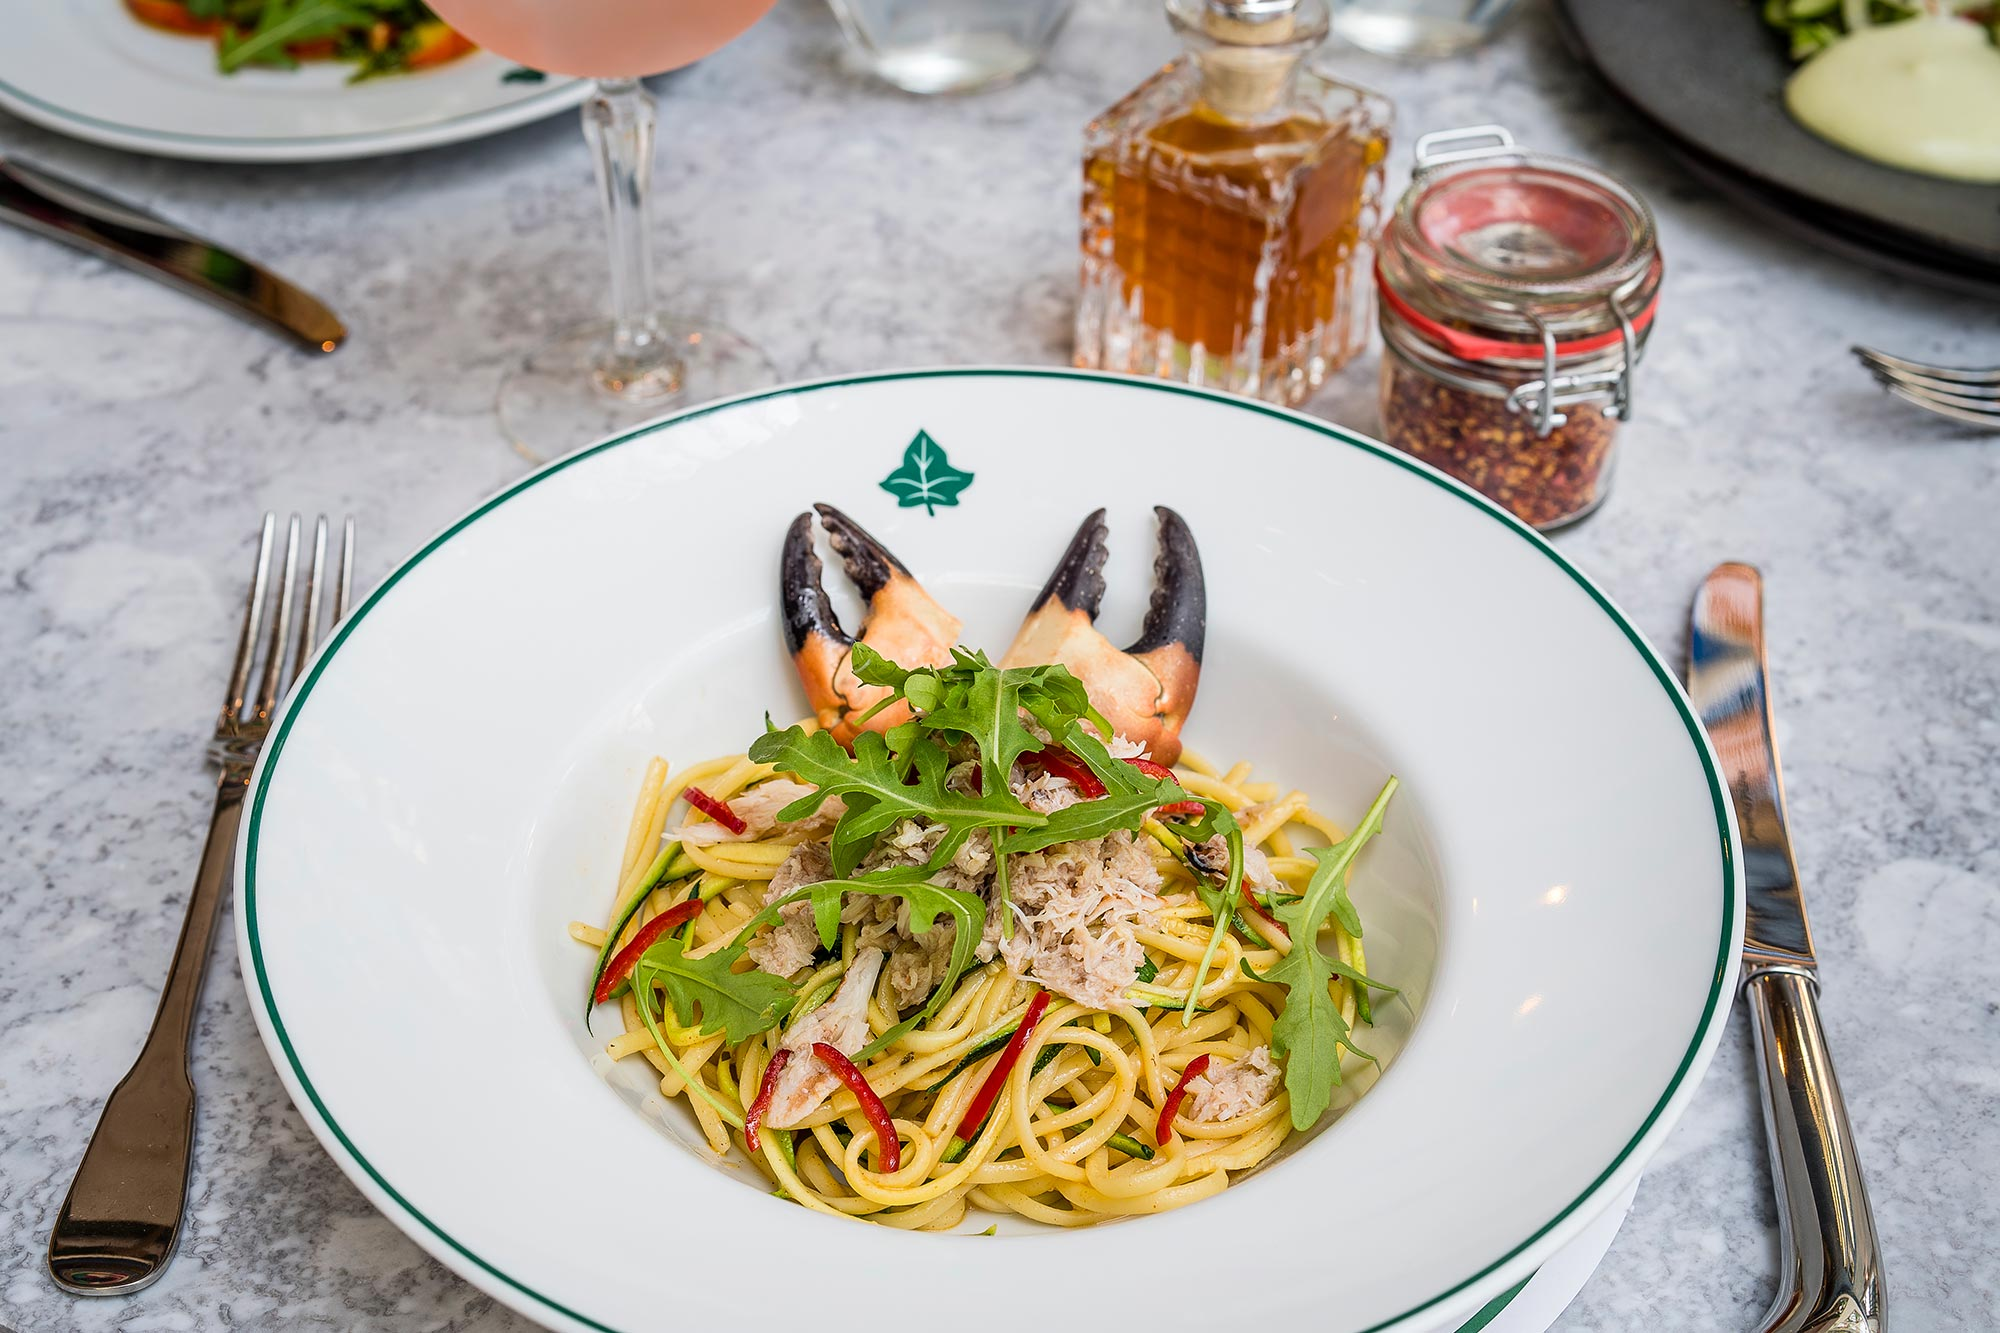 Dining out at The Ivy Cafe Blackheath - Crab Linguine - The Ivy Café, Blackheath